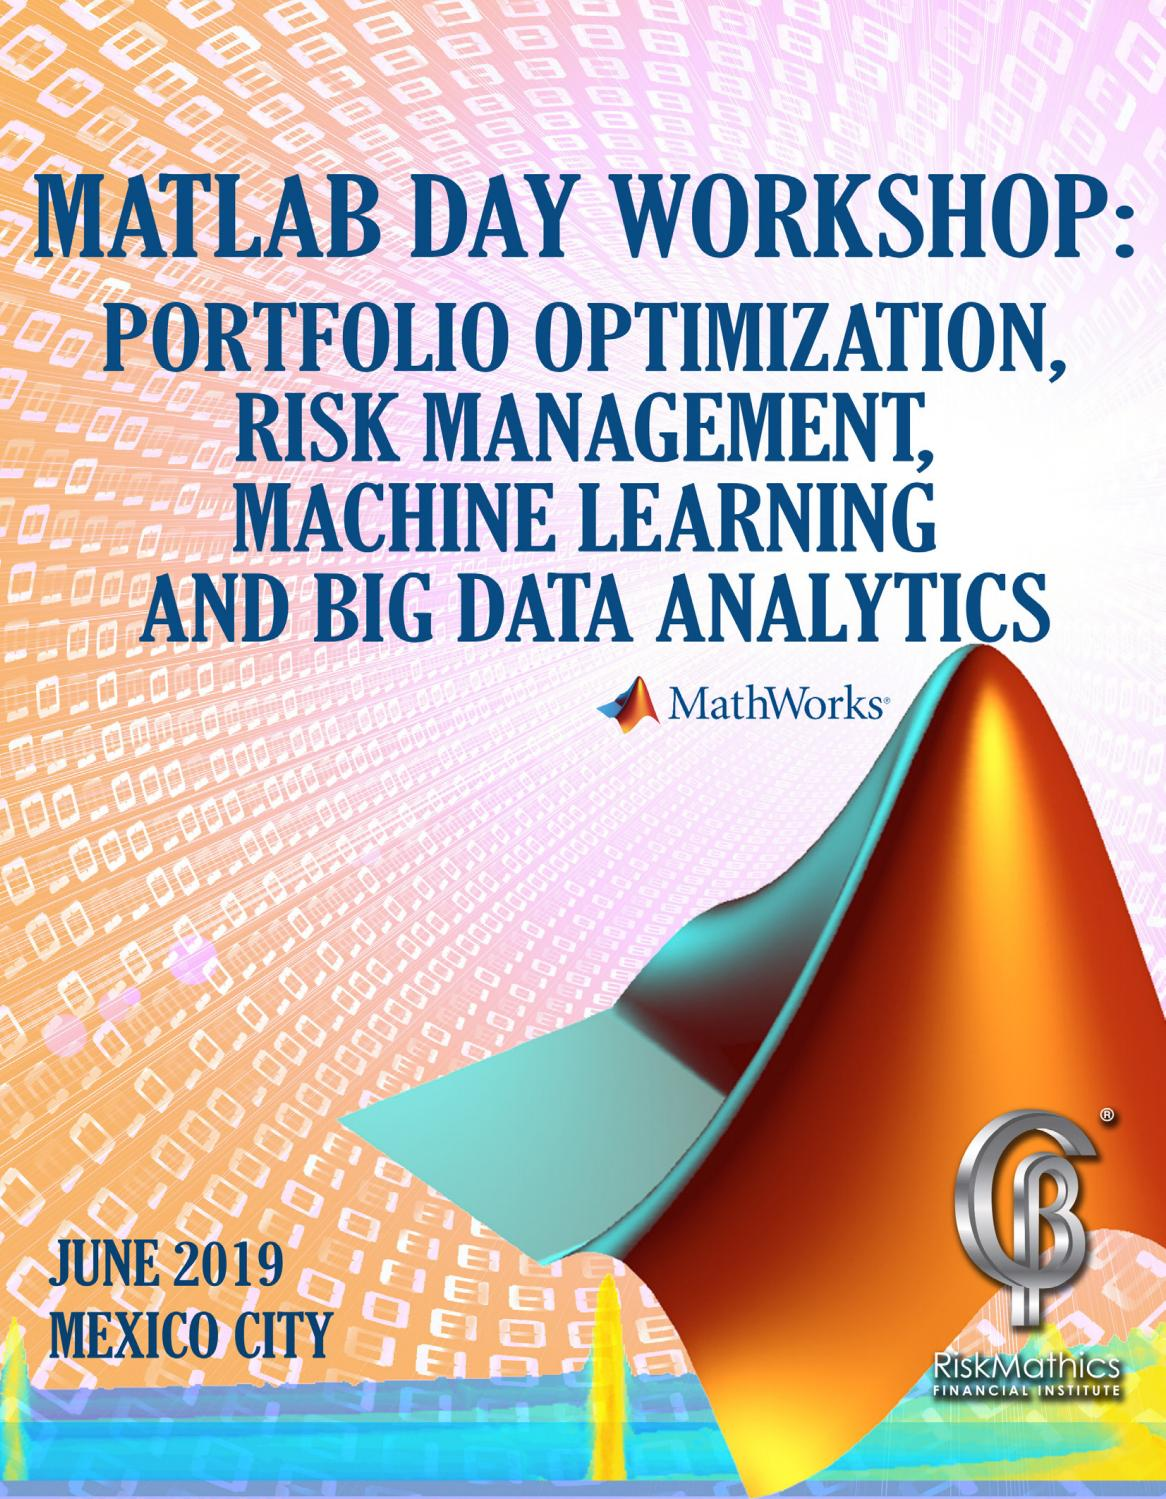 MATLAB Day Workshop 2019 Ing by RiskMathics Financial